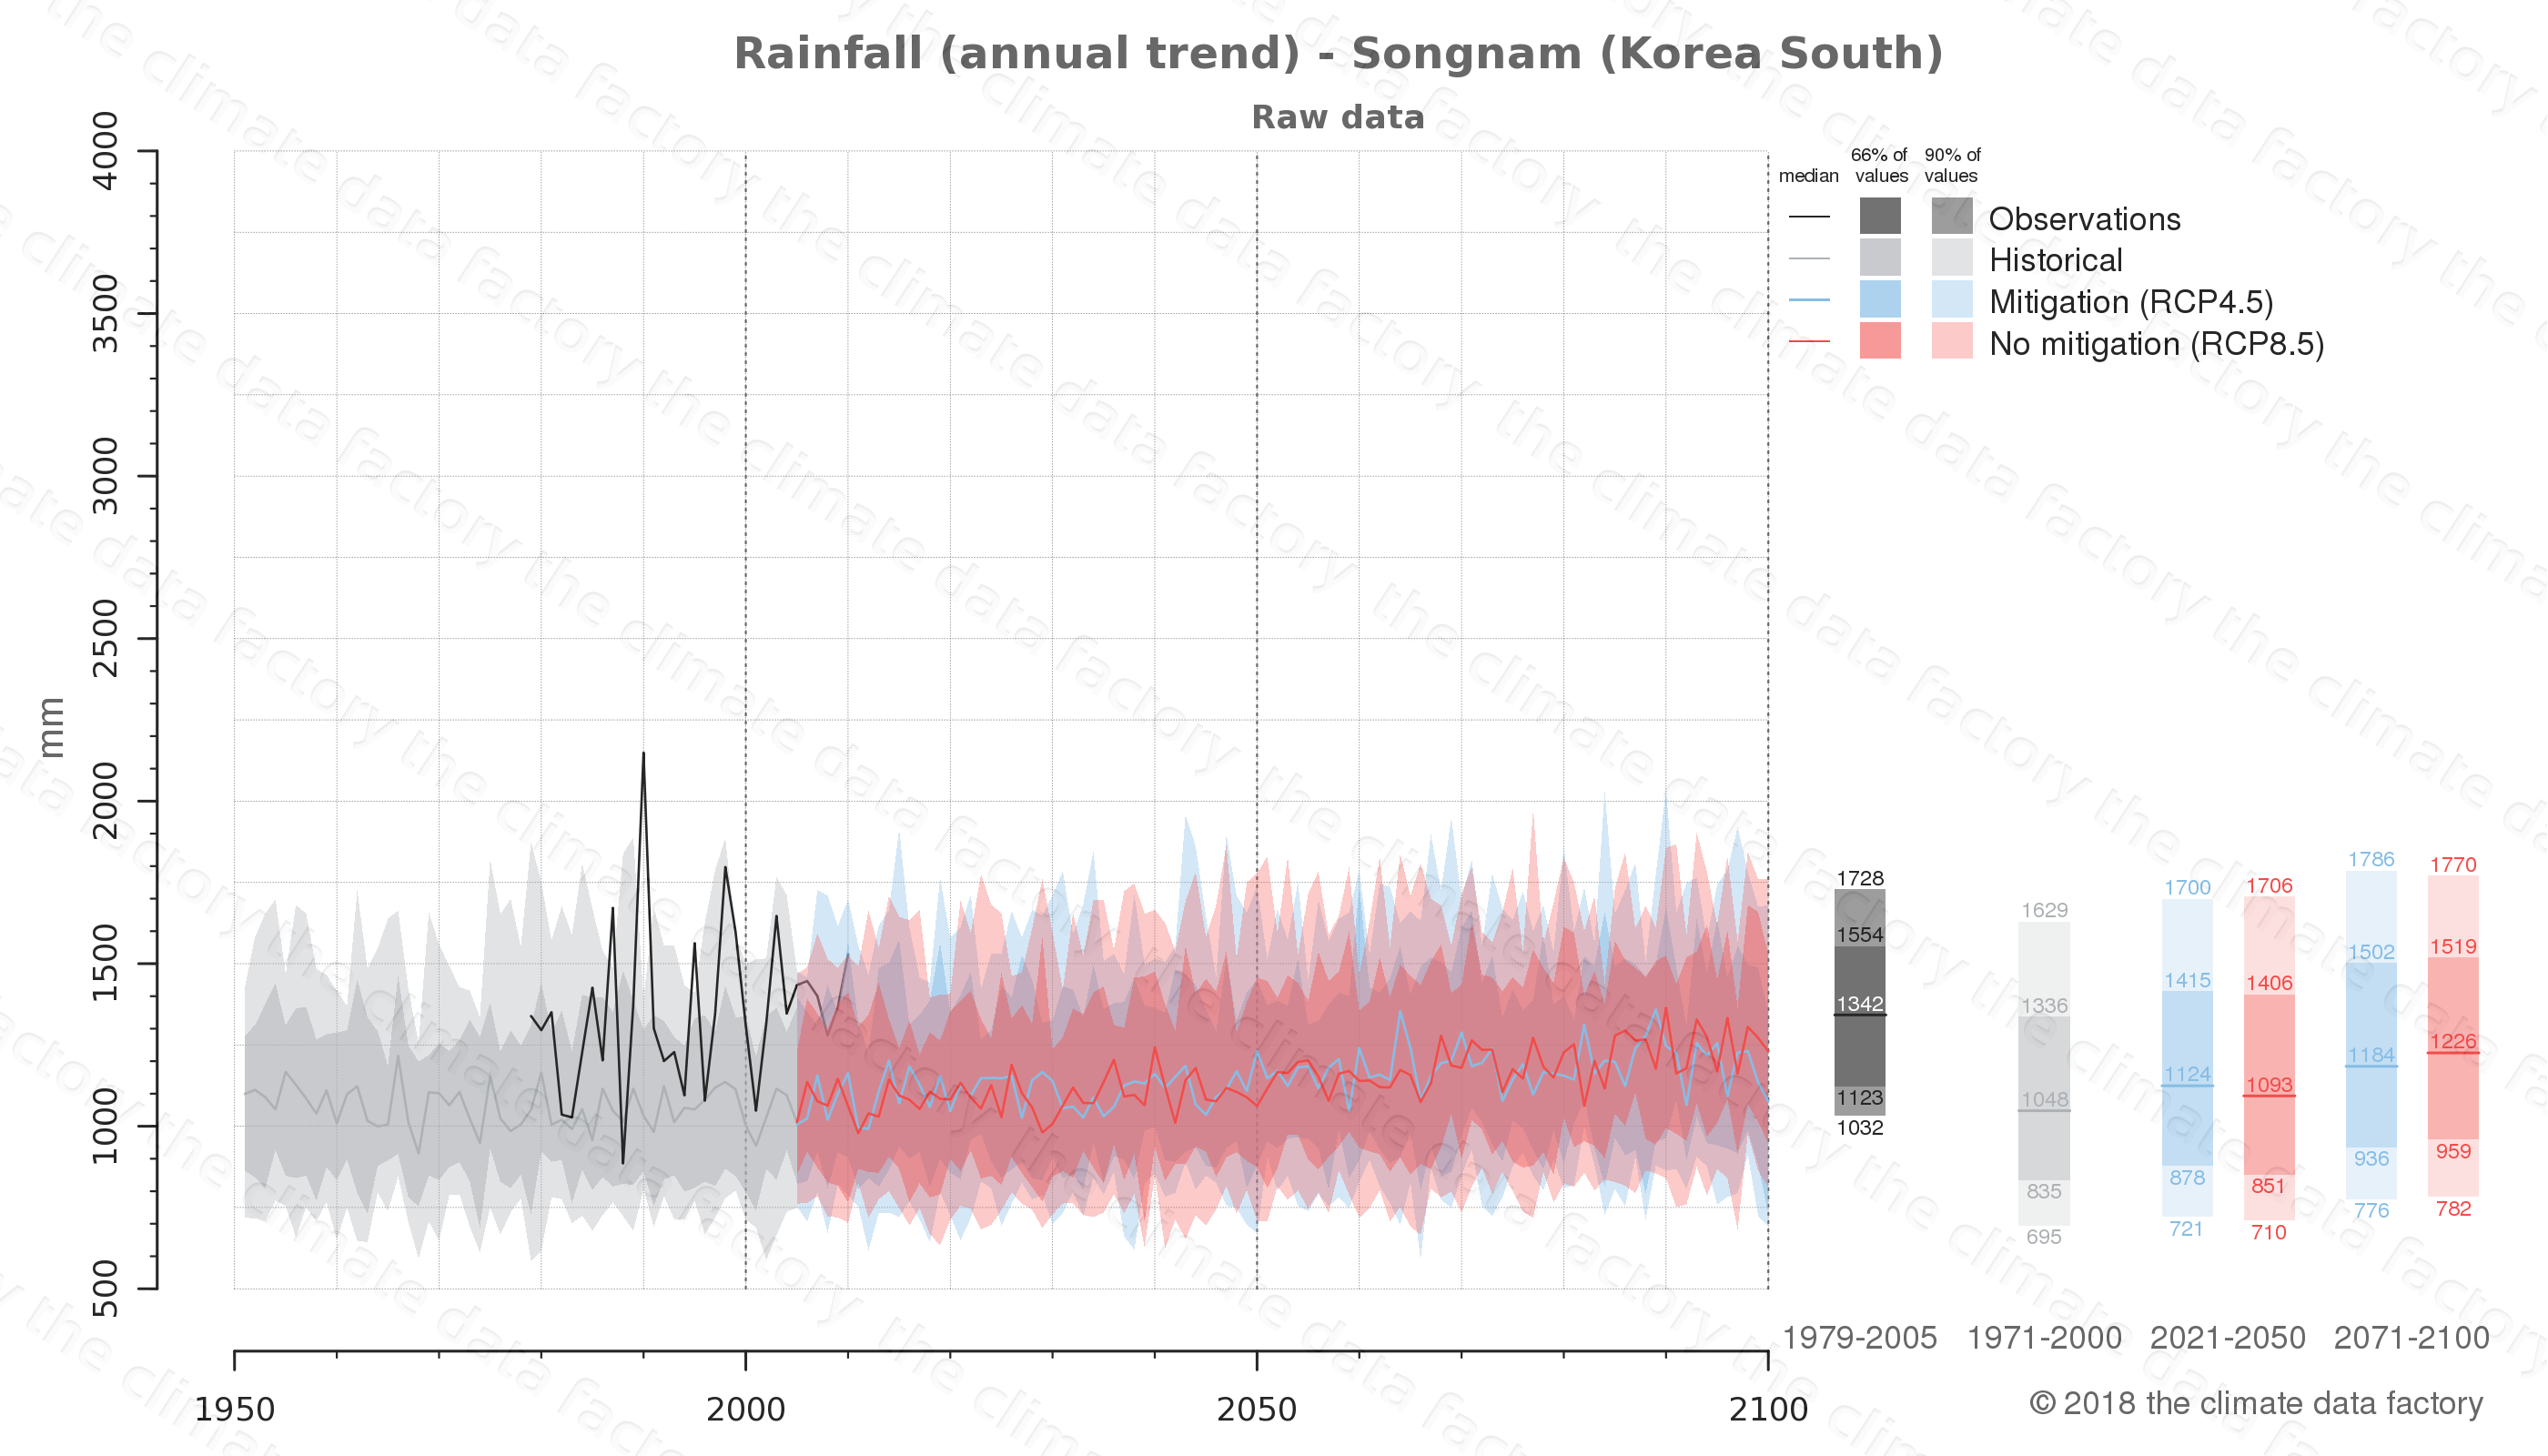 climate change data policy adaptation climate graph city data rainfall songnam south korea